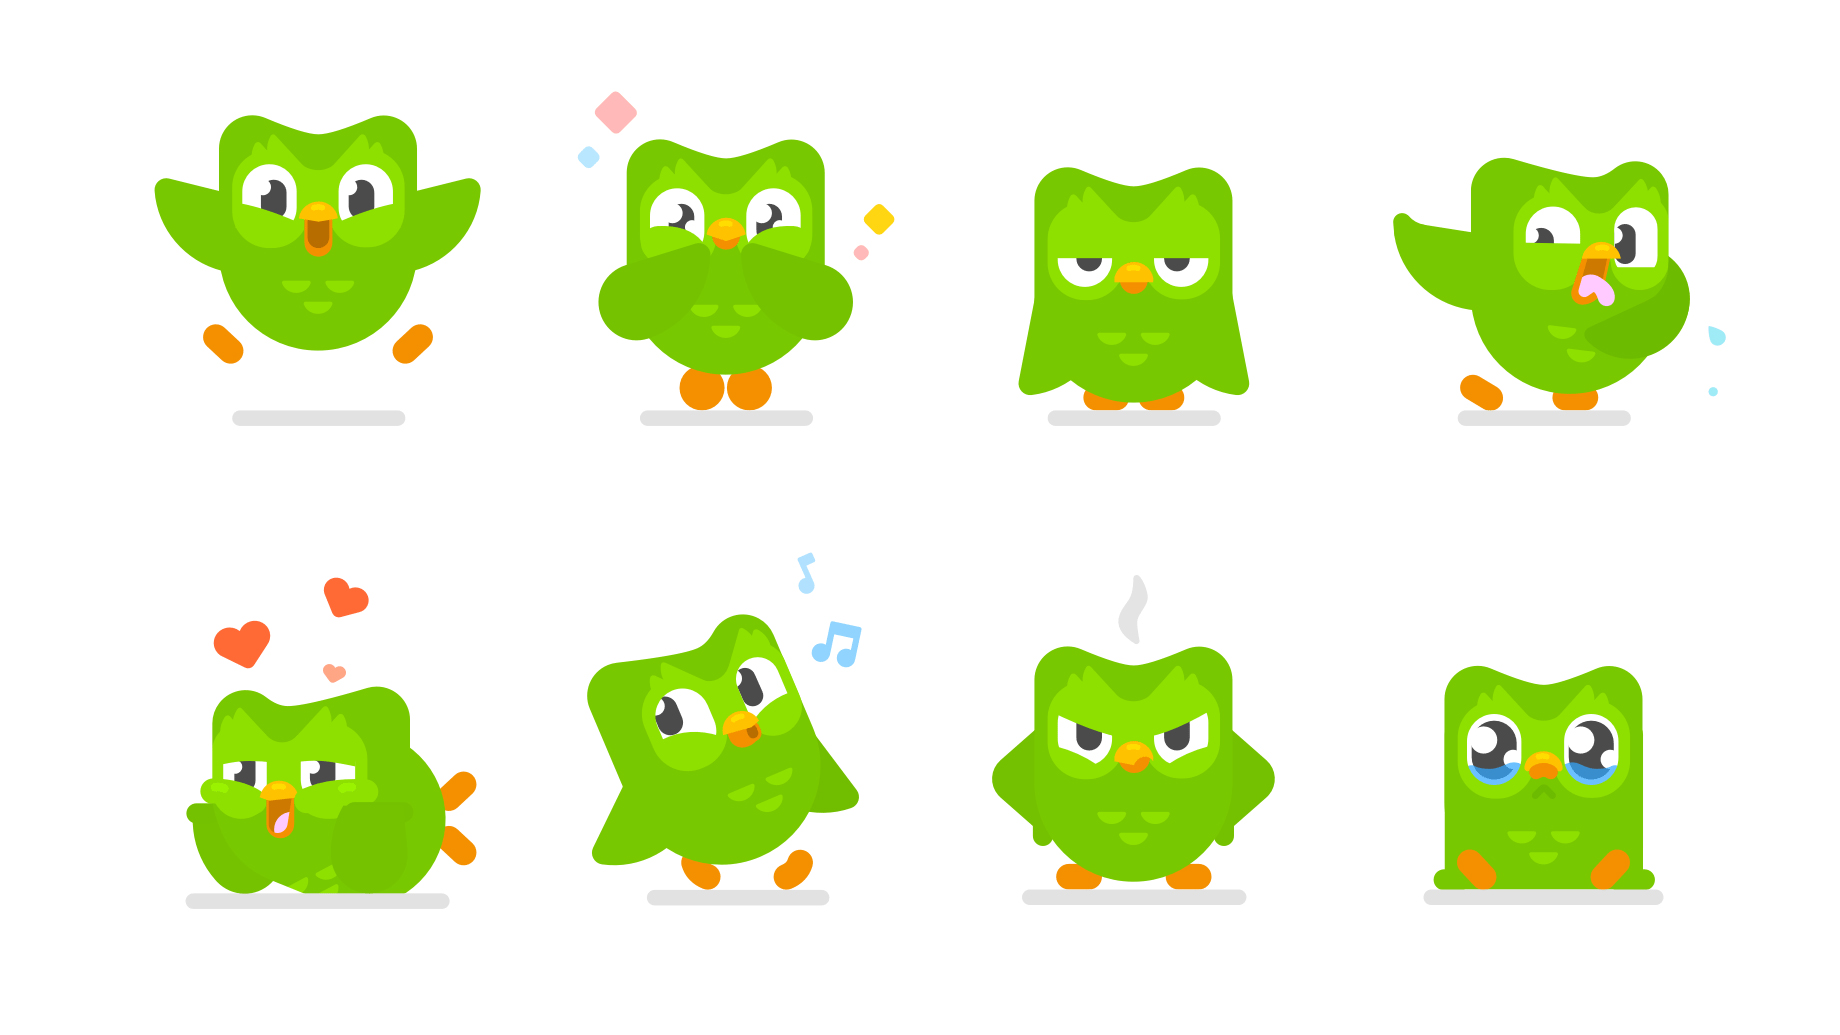 Duolingo's redesigned mascot is a hoot